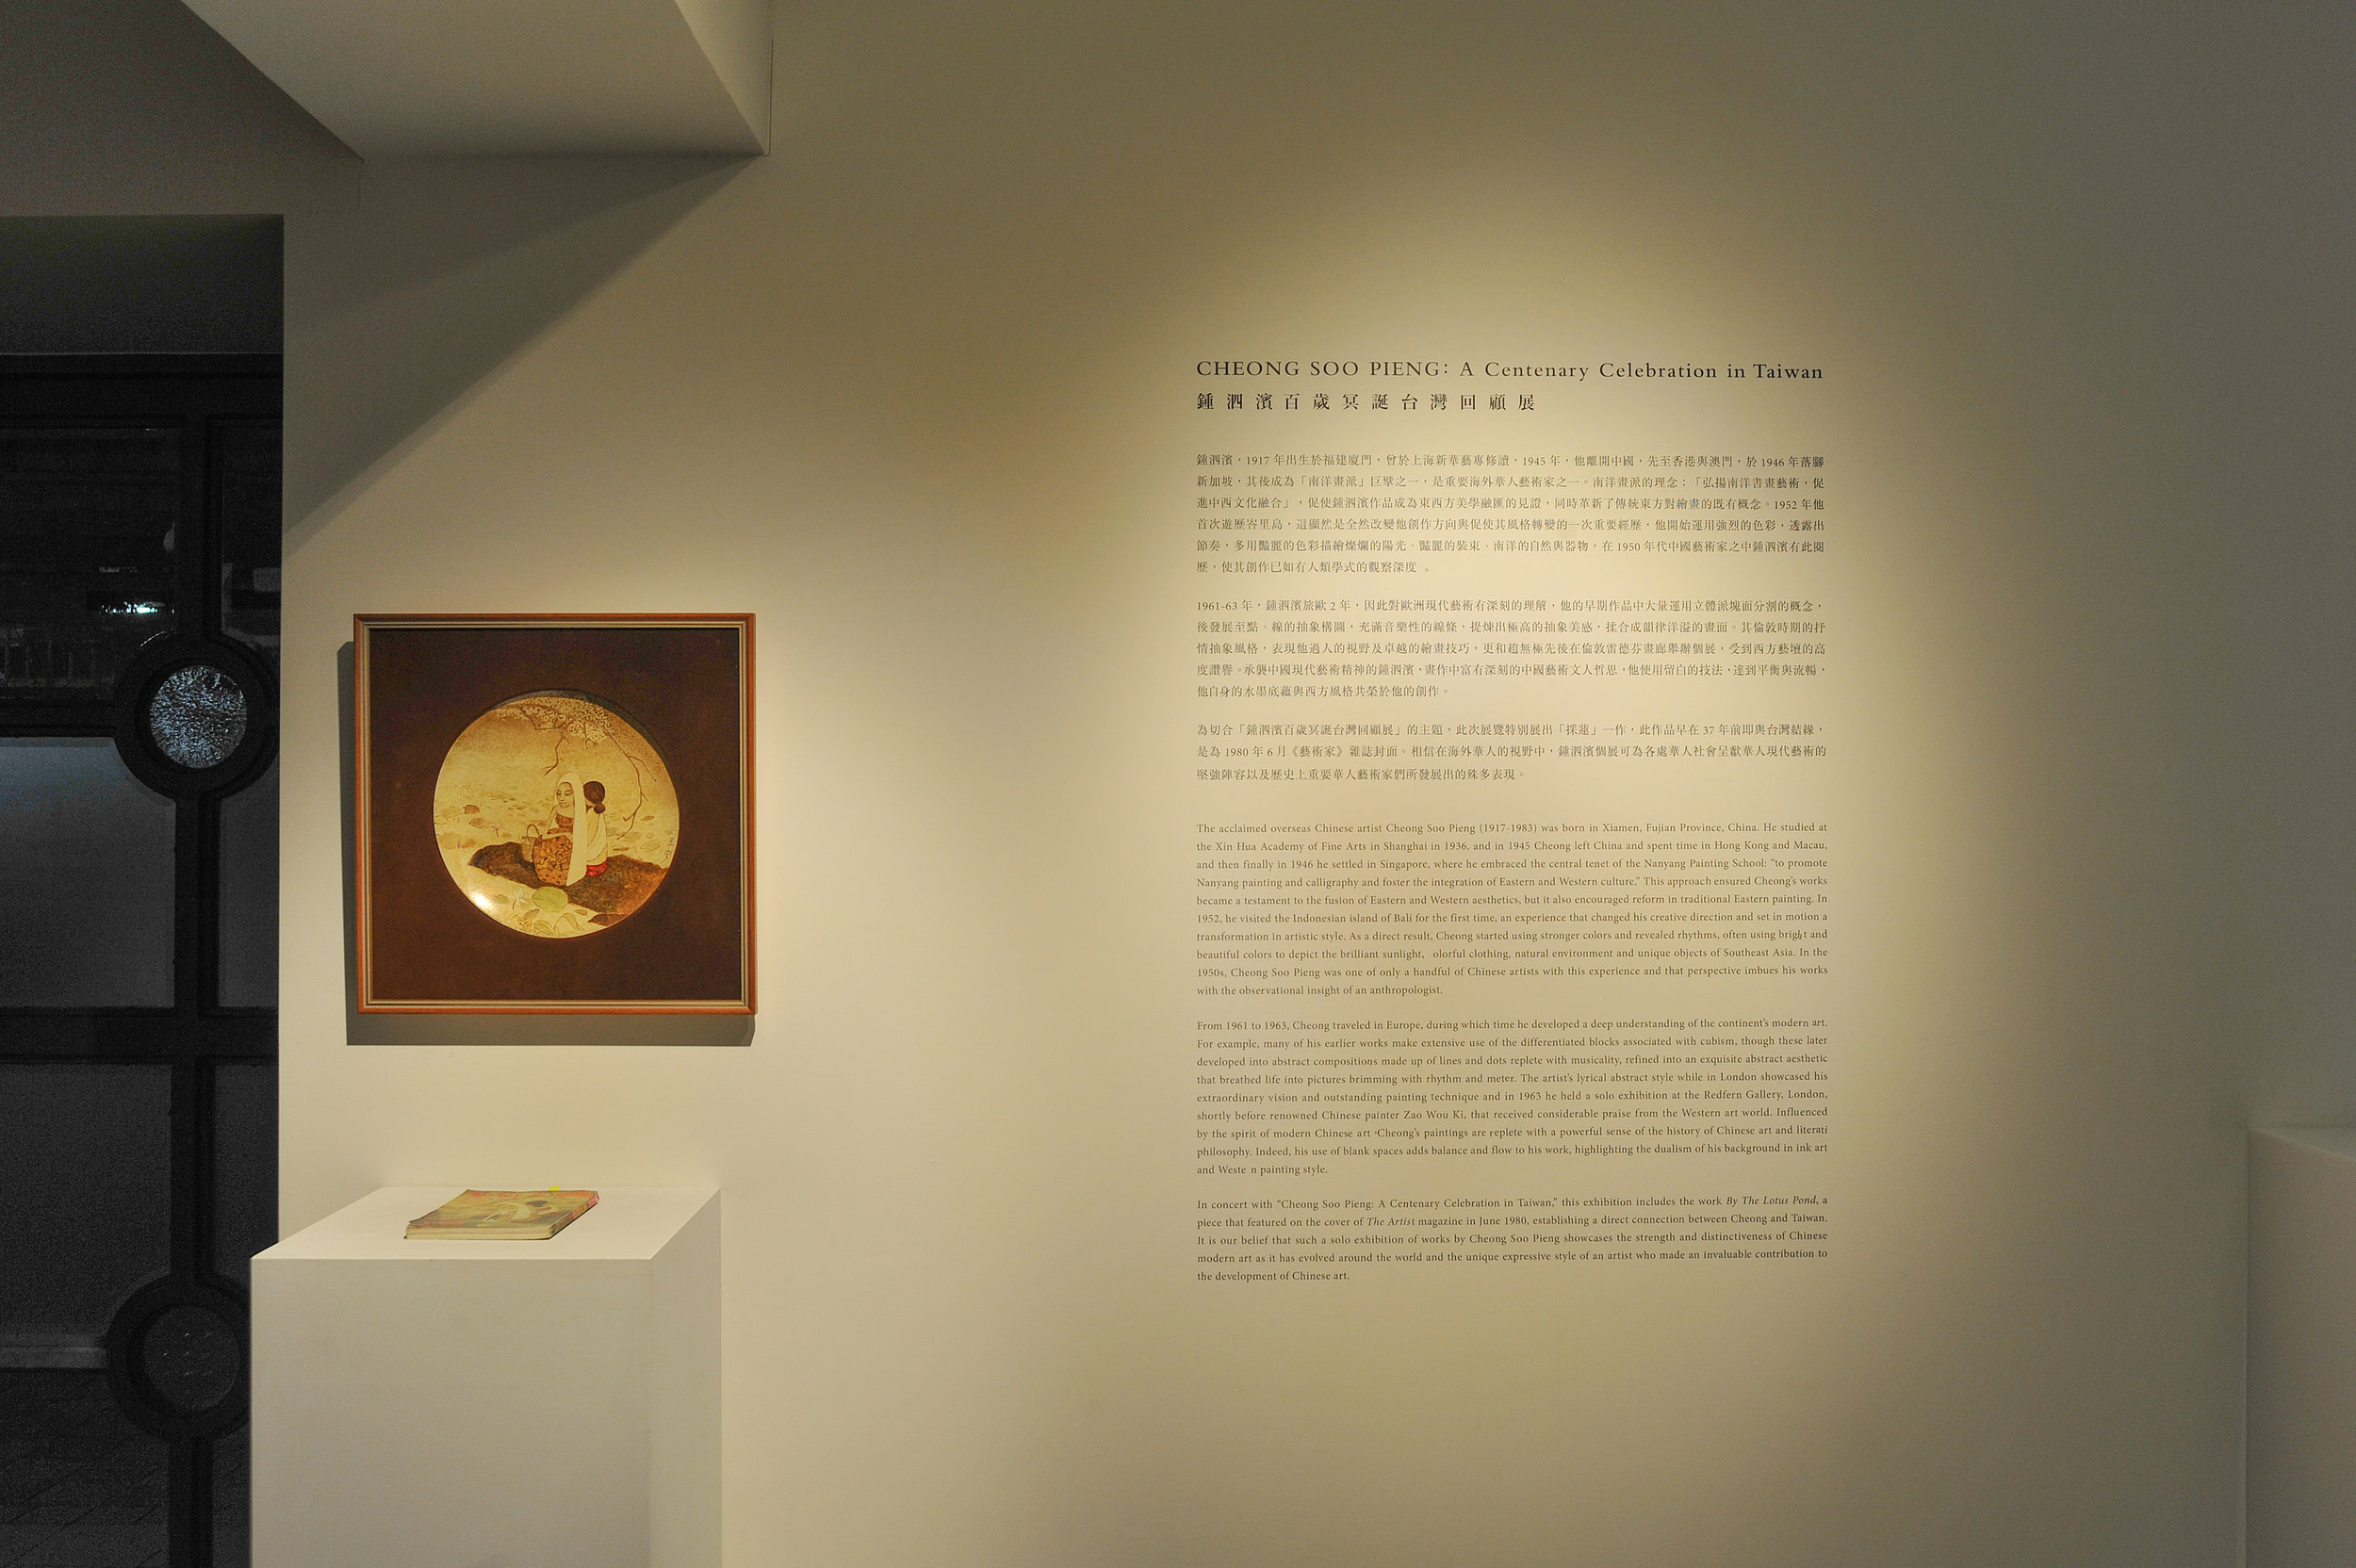 An image of Cheong Soo Pieng: A Centenary Celebration in Taiwan within Asia Art Center, Taipei, Taiwan